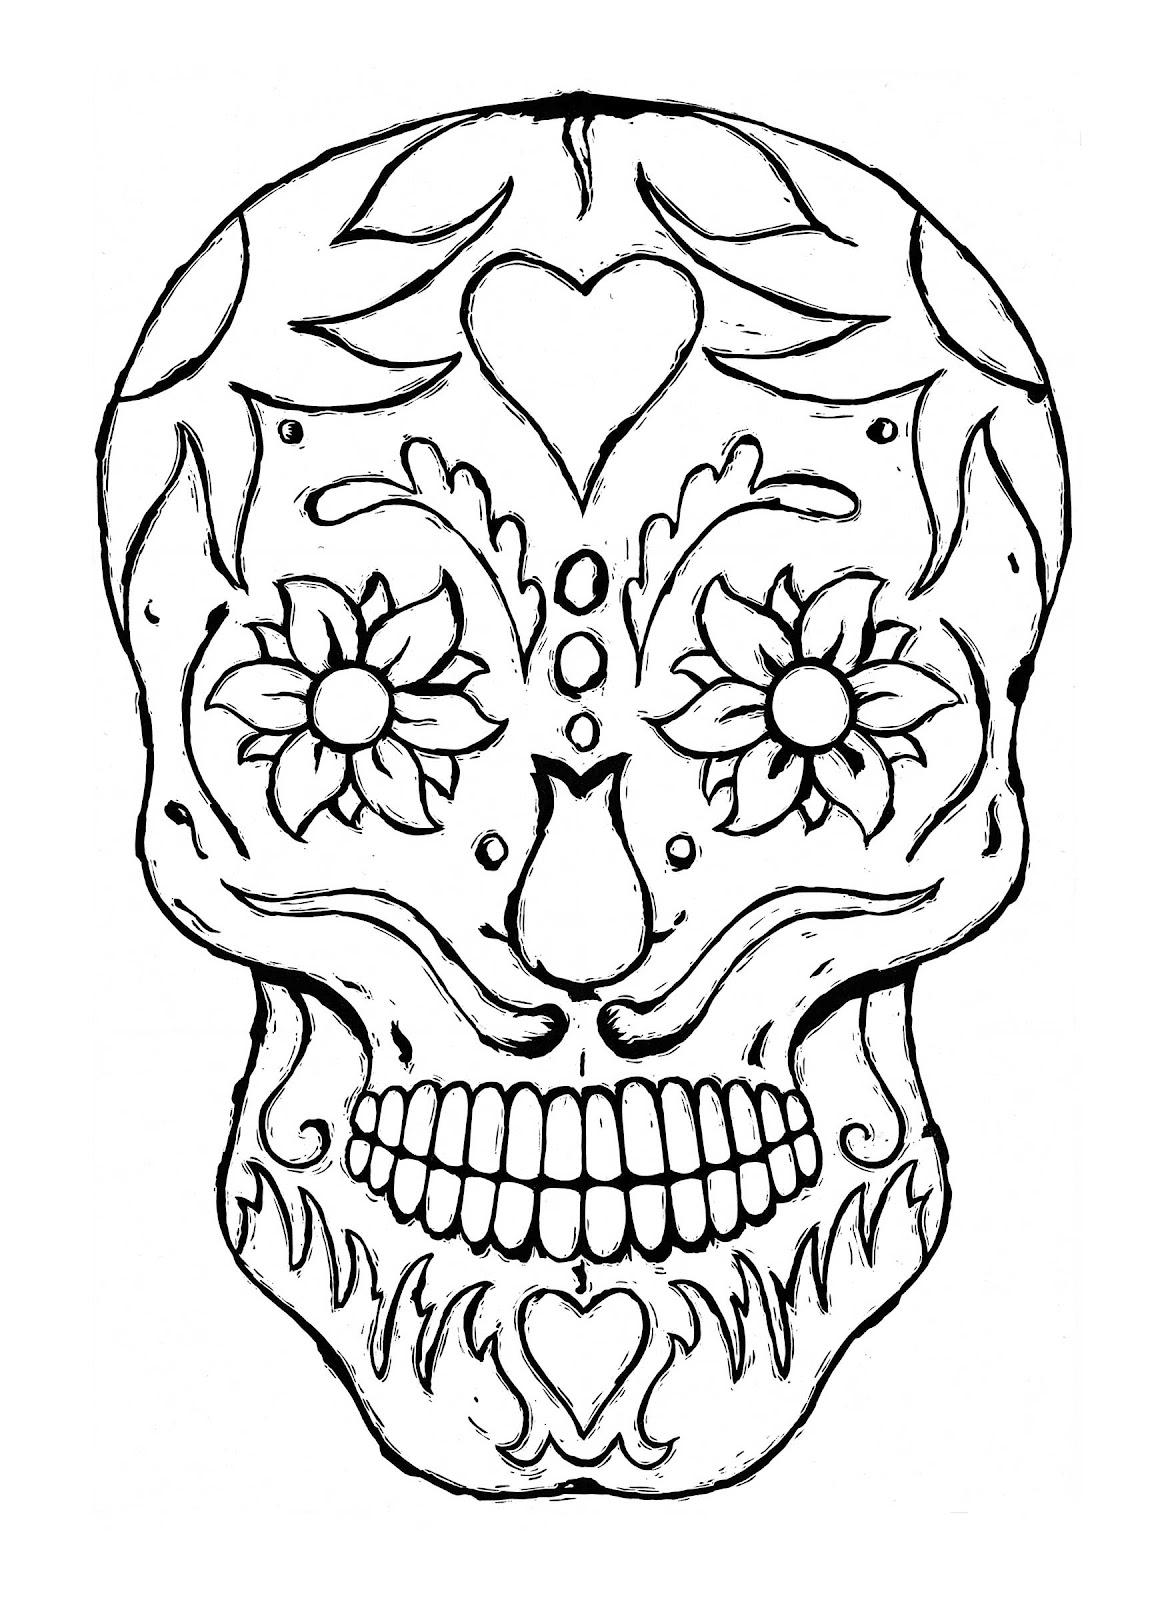 Coloring pages for adults and teenagers